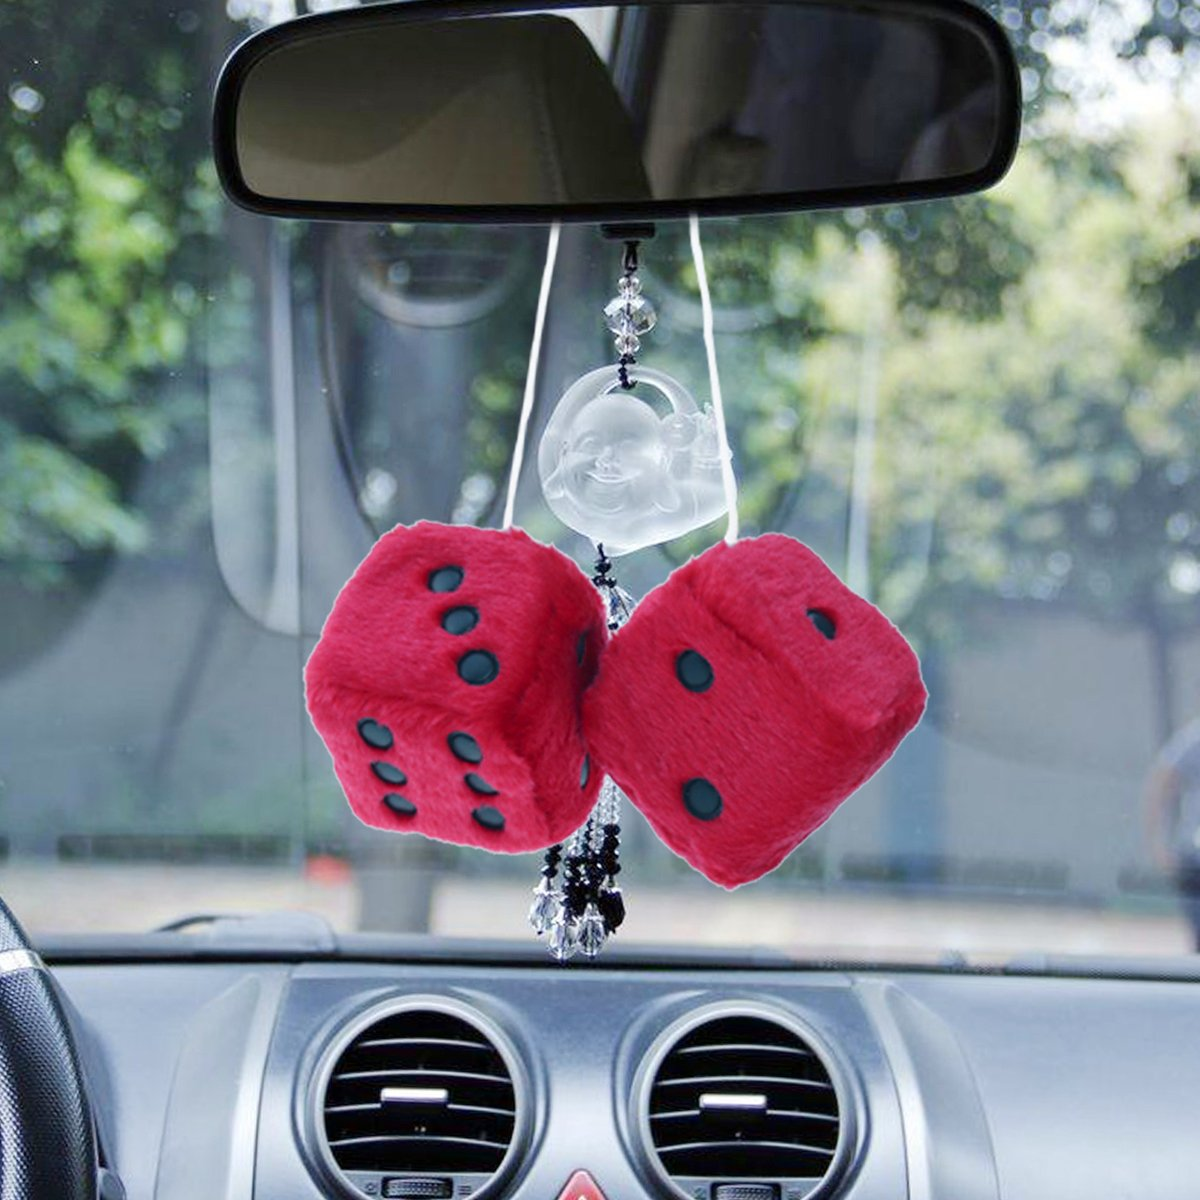 WINOMO Red Hanging Dice Charm Auto Car Rearview Mirror Hanging Accessories for Car Decoration